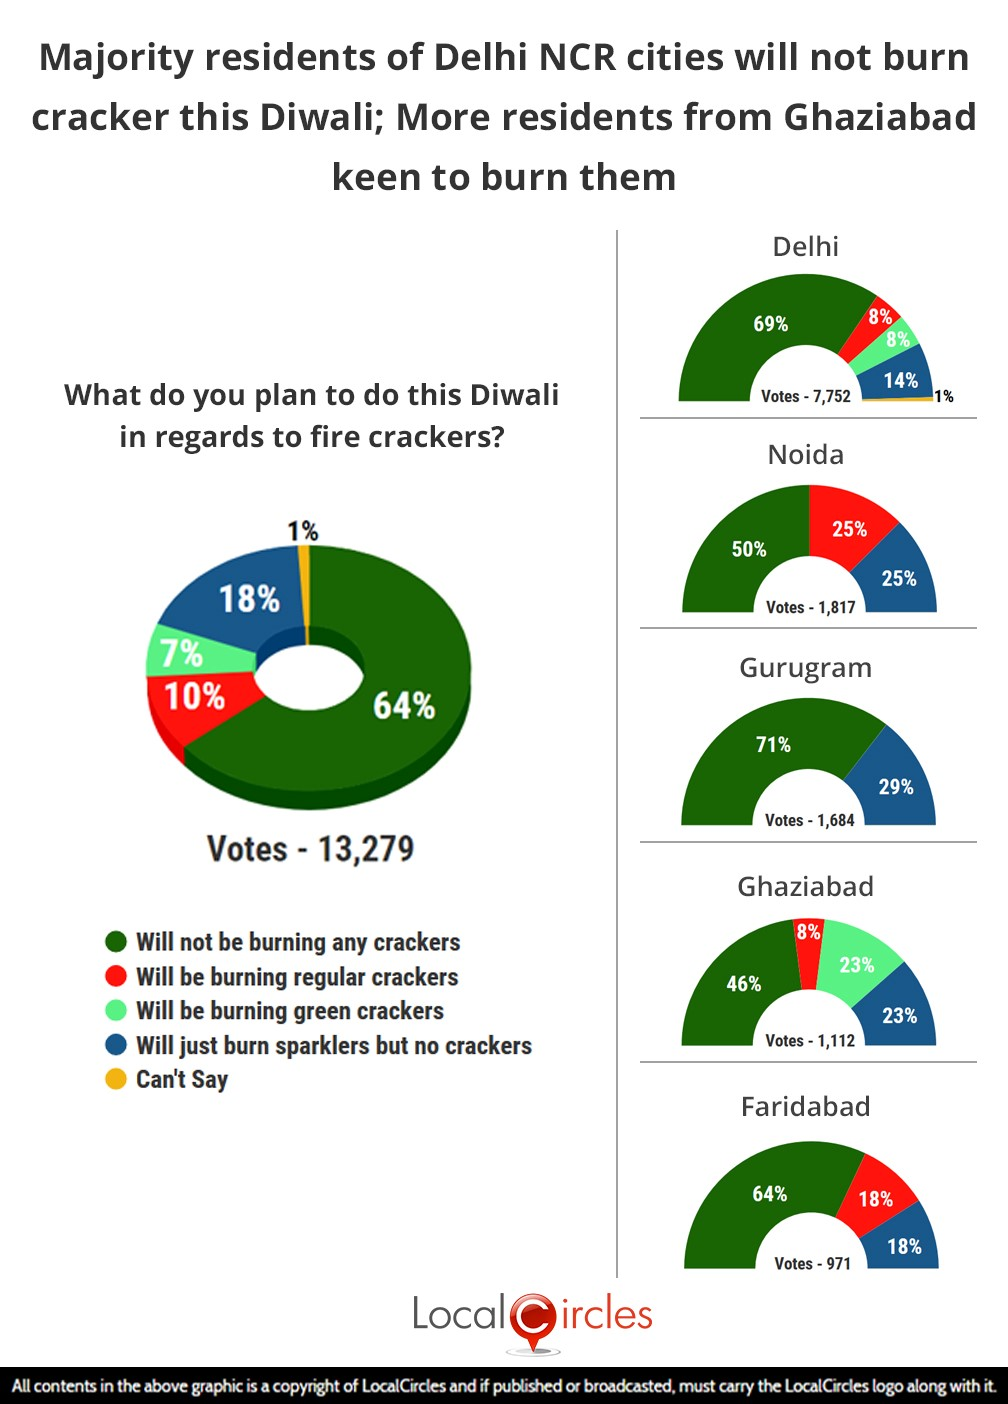 LocalCircles Poll - Majority residents of Delhi NCR cities will not burn cracker this Diwali; More residents from Ghaziabad keen to burn them